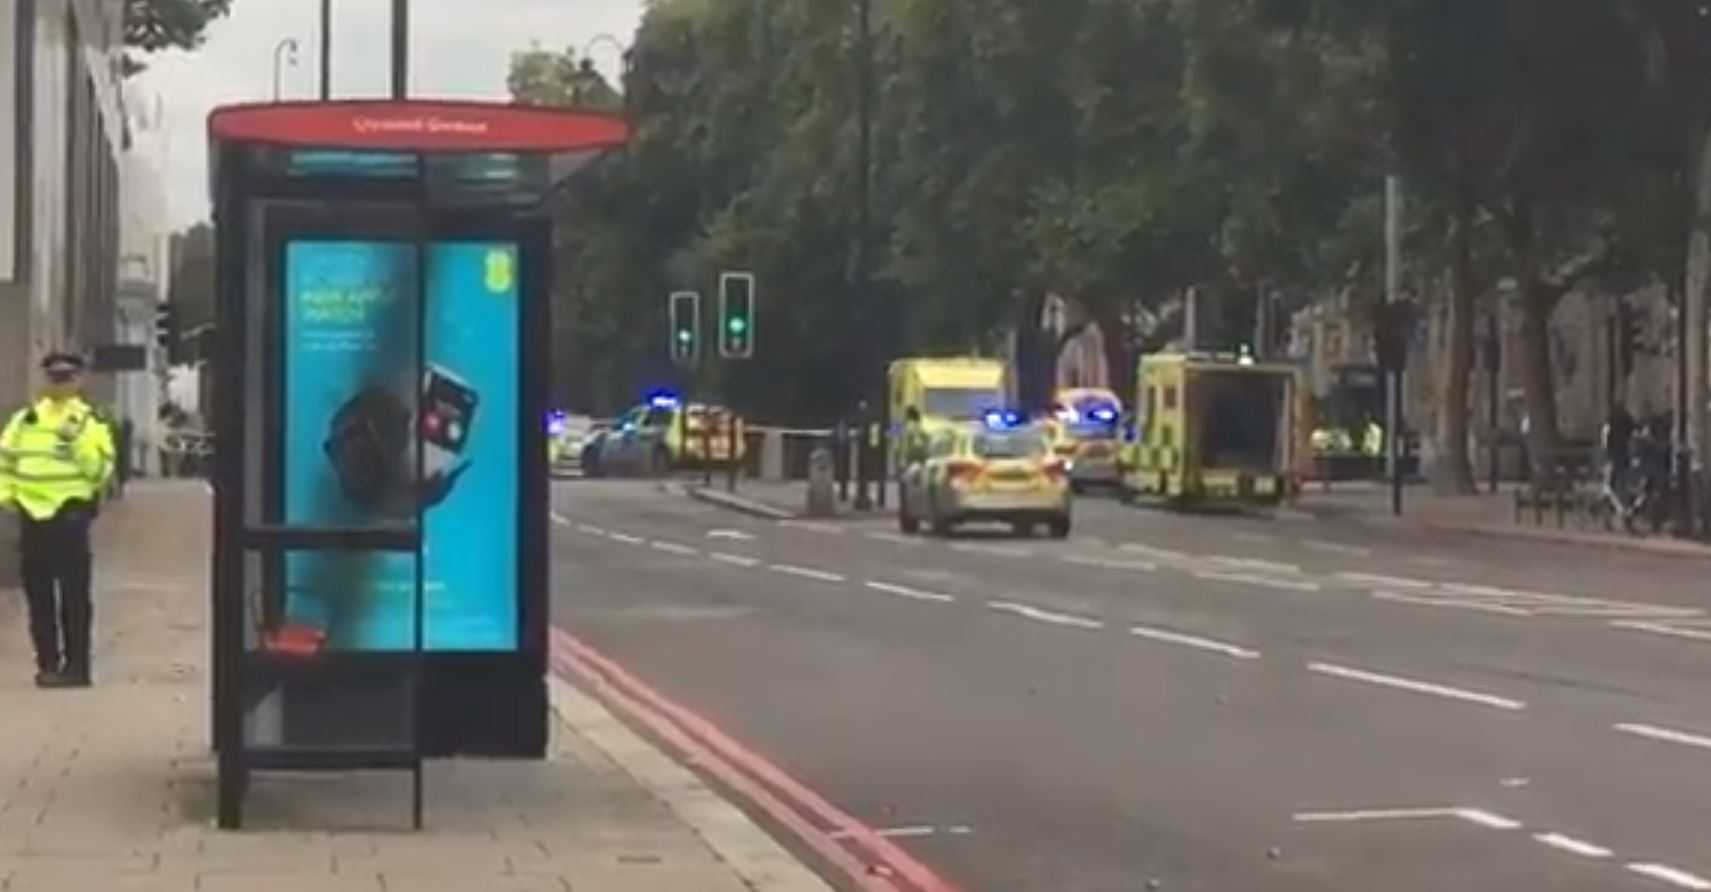 11 people injured as vehicle  hits pedestrians near London's Natural History Museum